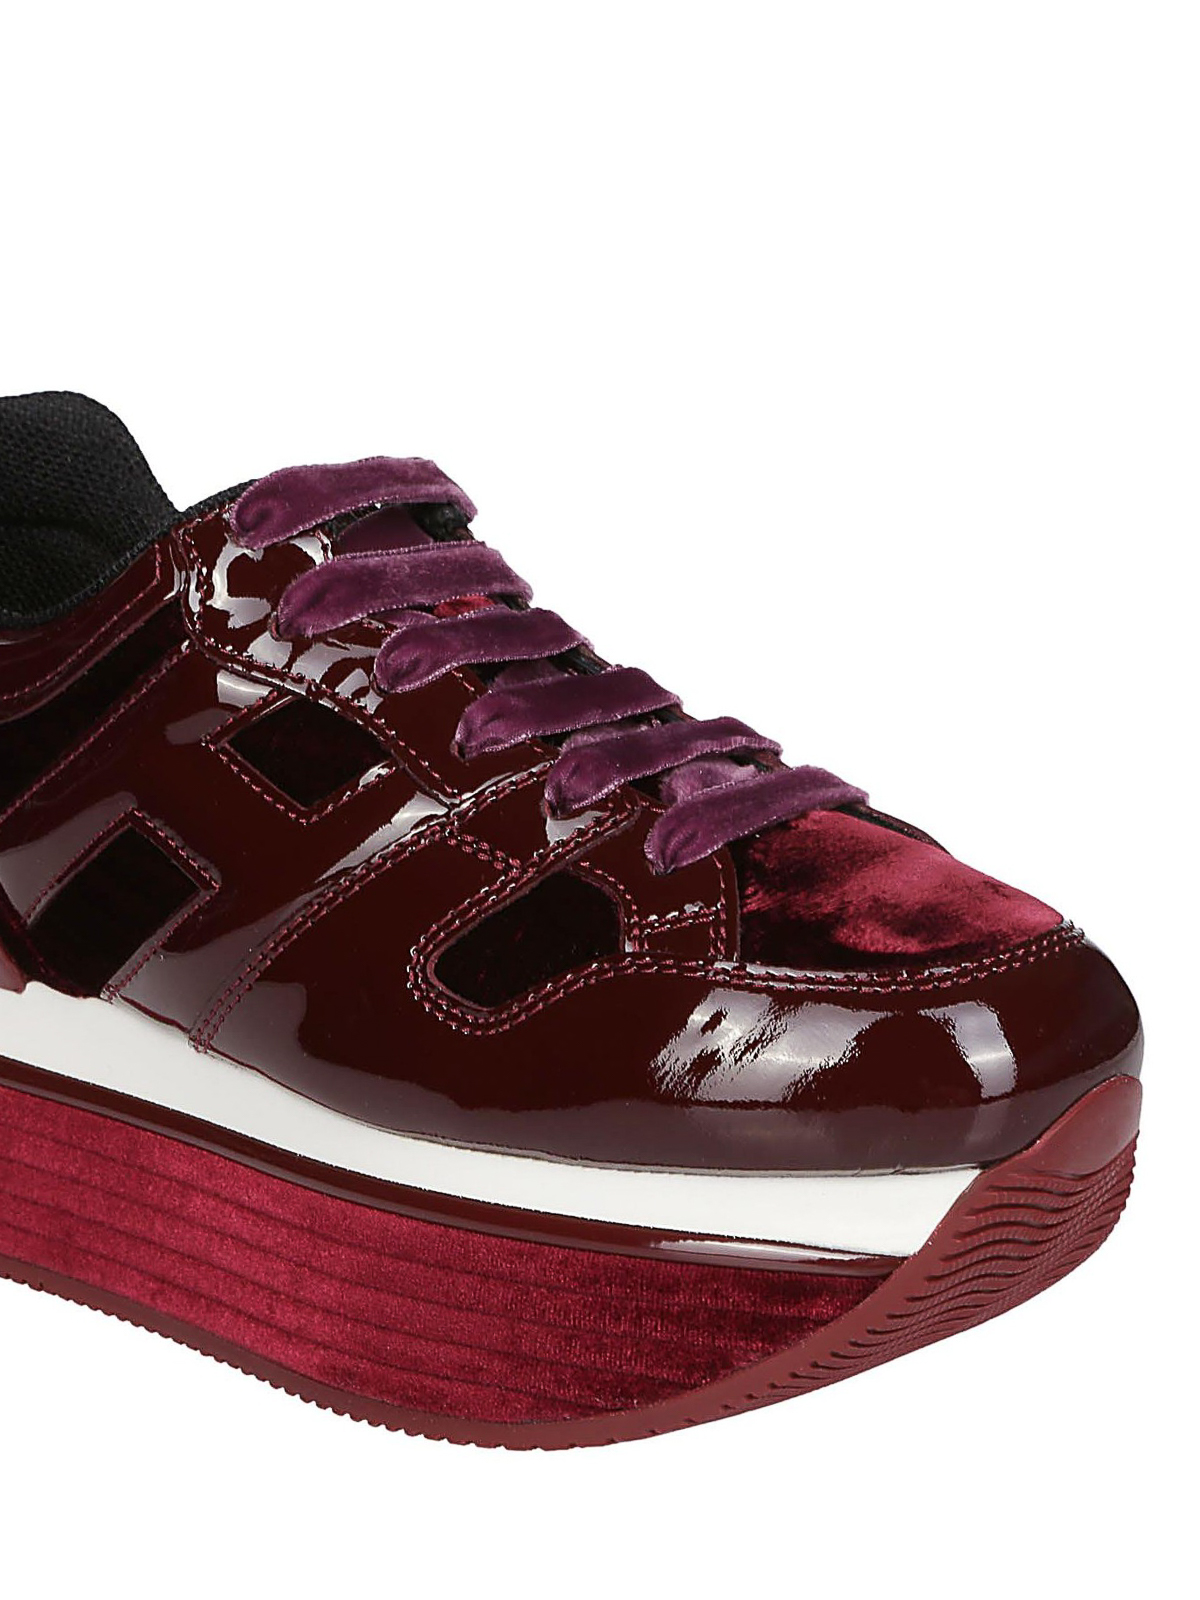 Trainers Hogan - Maxi H222 burgundy patent and velvet sneakers ...